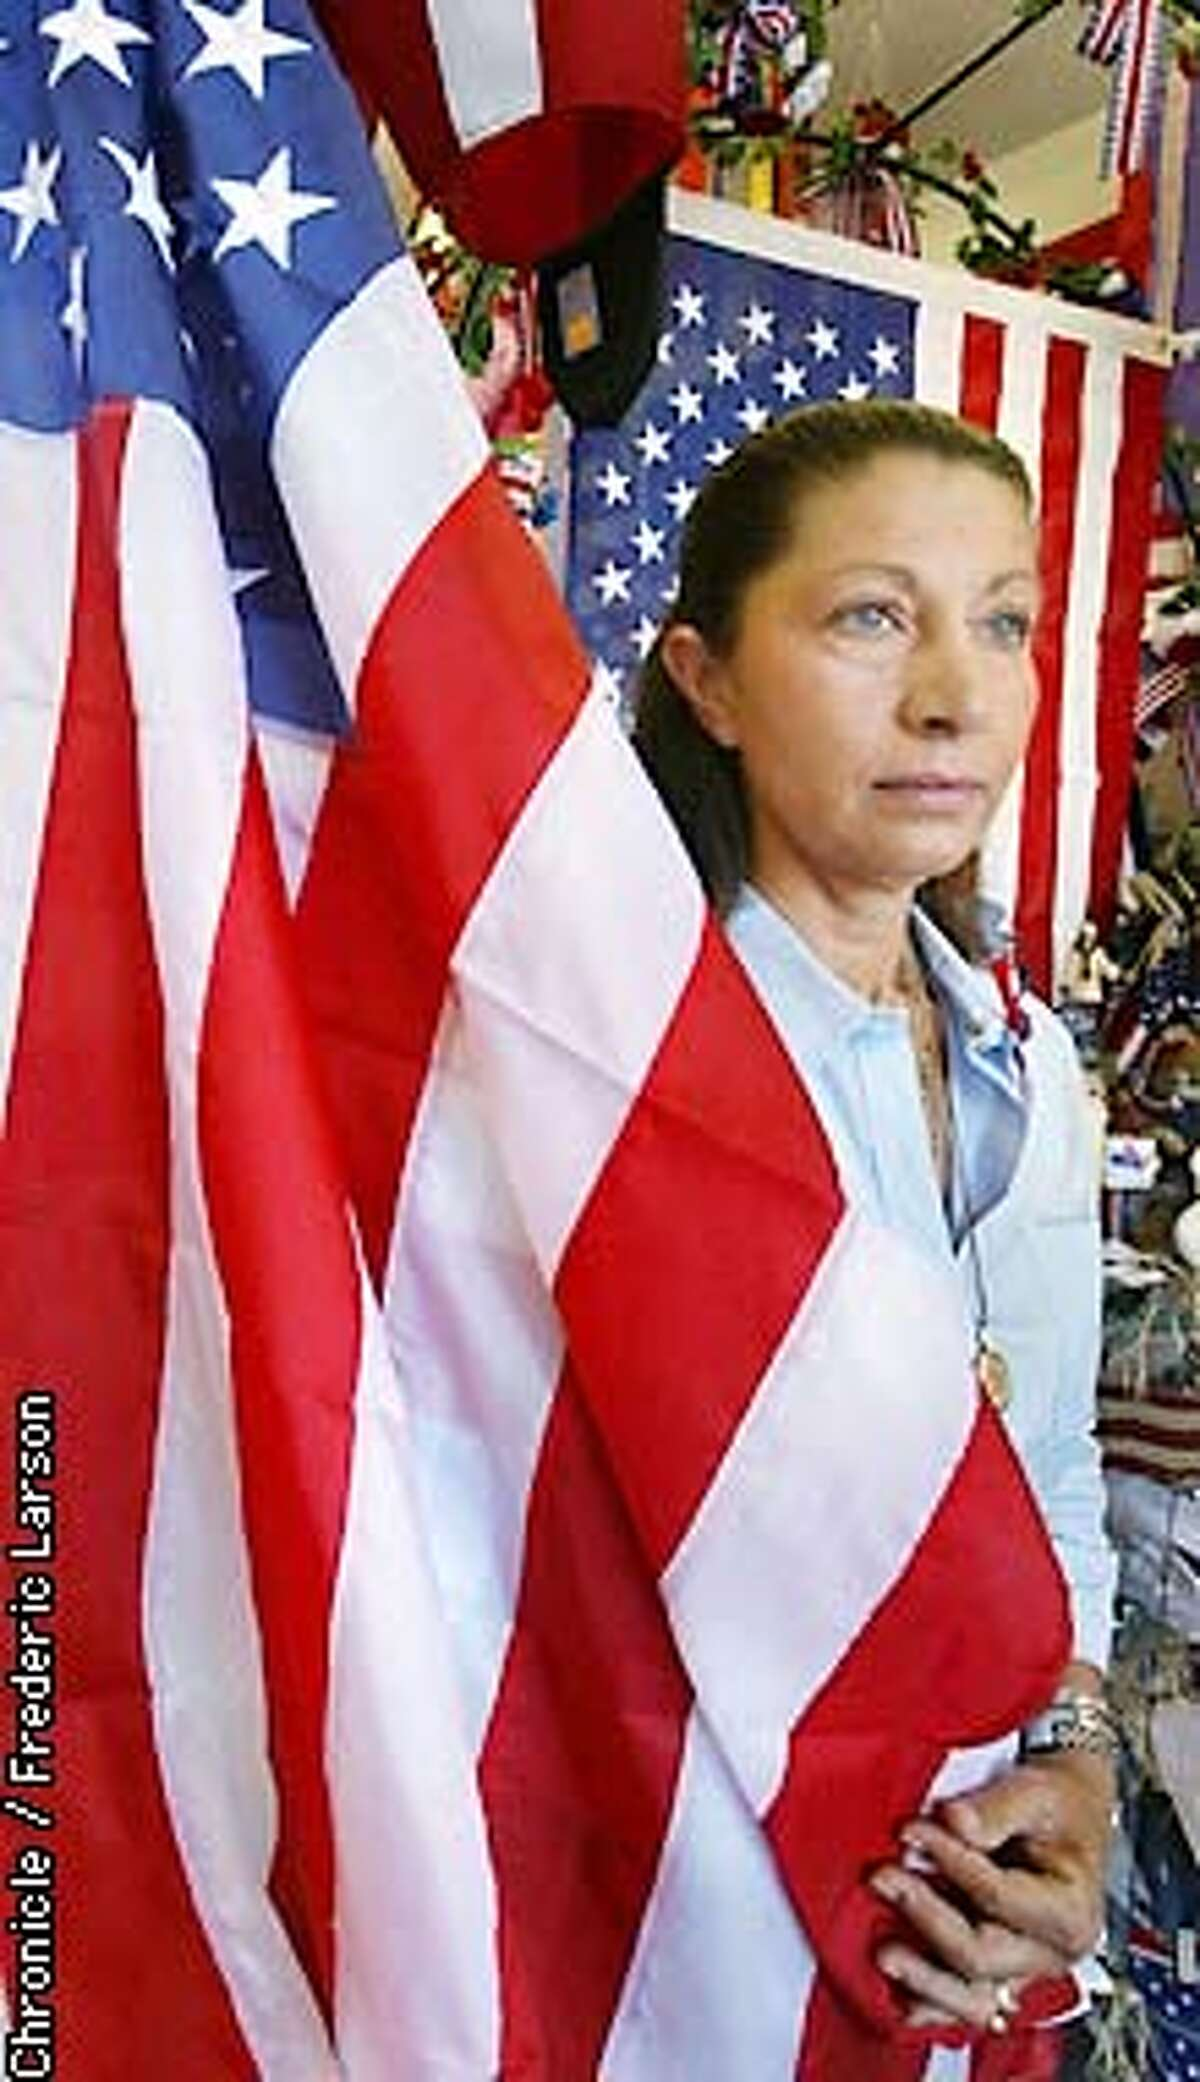 : Judy's Flag City has been selling them for 10 years in her small shop, overflowing with U.S. flags, bunting, and a huge assortment of other paraphernalia. On Sept. 11, Judy Sheldon, a Greek immigrant, sold 3,000 flags. Last July 4, she sold about 500 flags. This year, after 9/11, she'll sell 1,000. Patriotism is on the rise. Chronicle photo by Frederic Larson